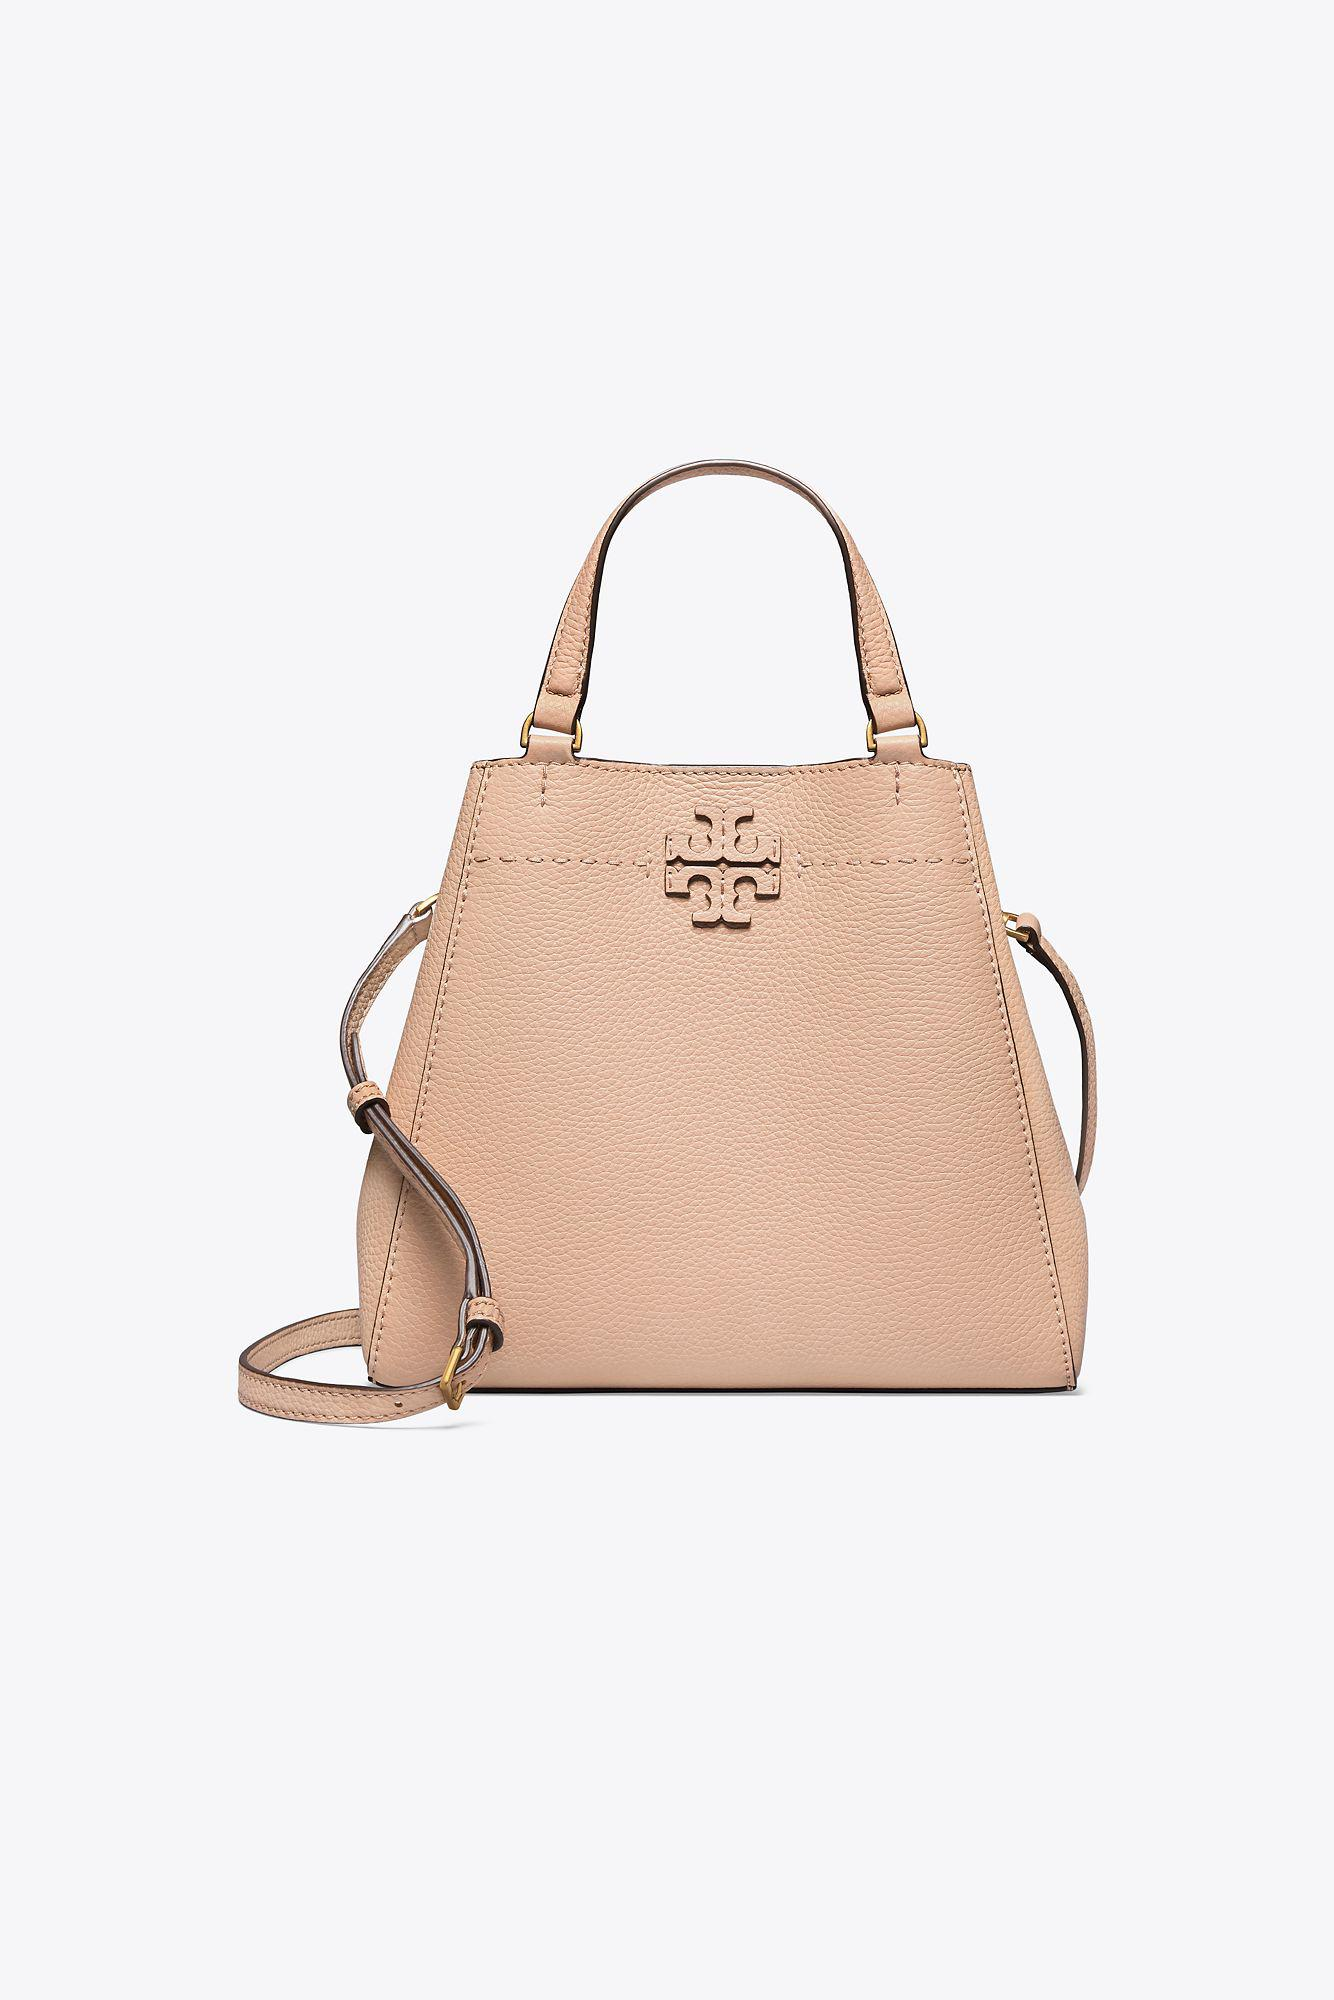 24108d2fb1cf Lyst - Tory Burch Mcgraw Small Carryall in Natural